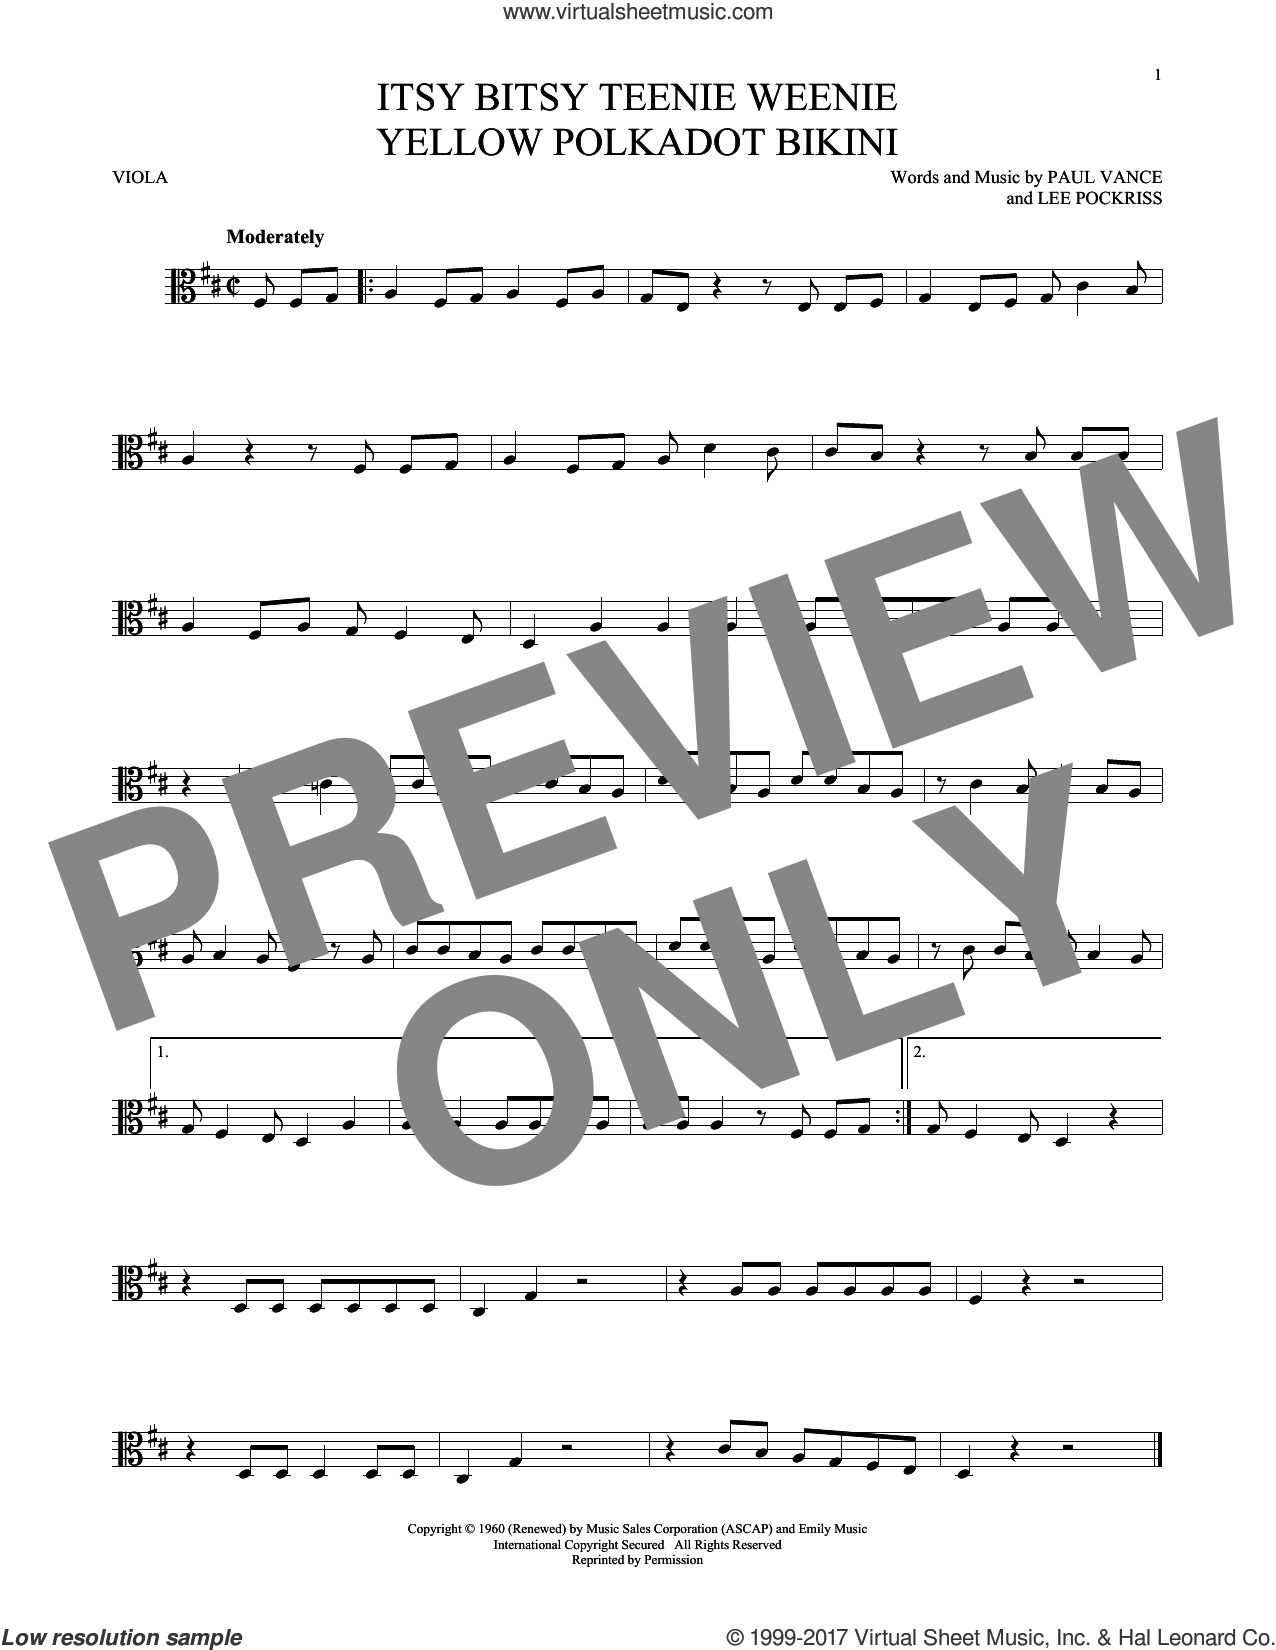 Itsy Bitsy Teenie Weenie Yellow Polkadot Bikini sheet music for viola solo by Brian Hyland, Lee Pockriss and Paul Vance, intermediate skill level